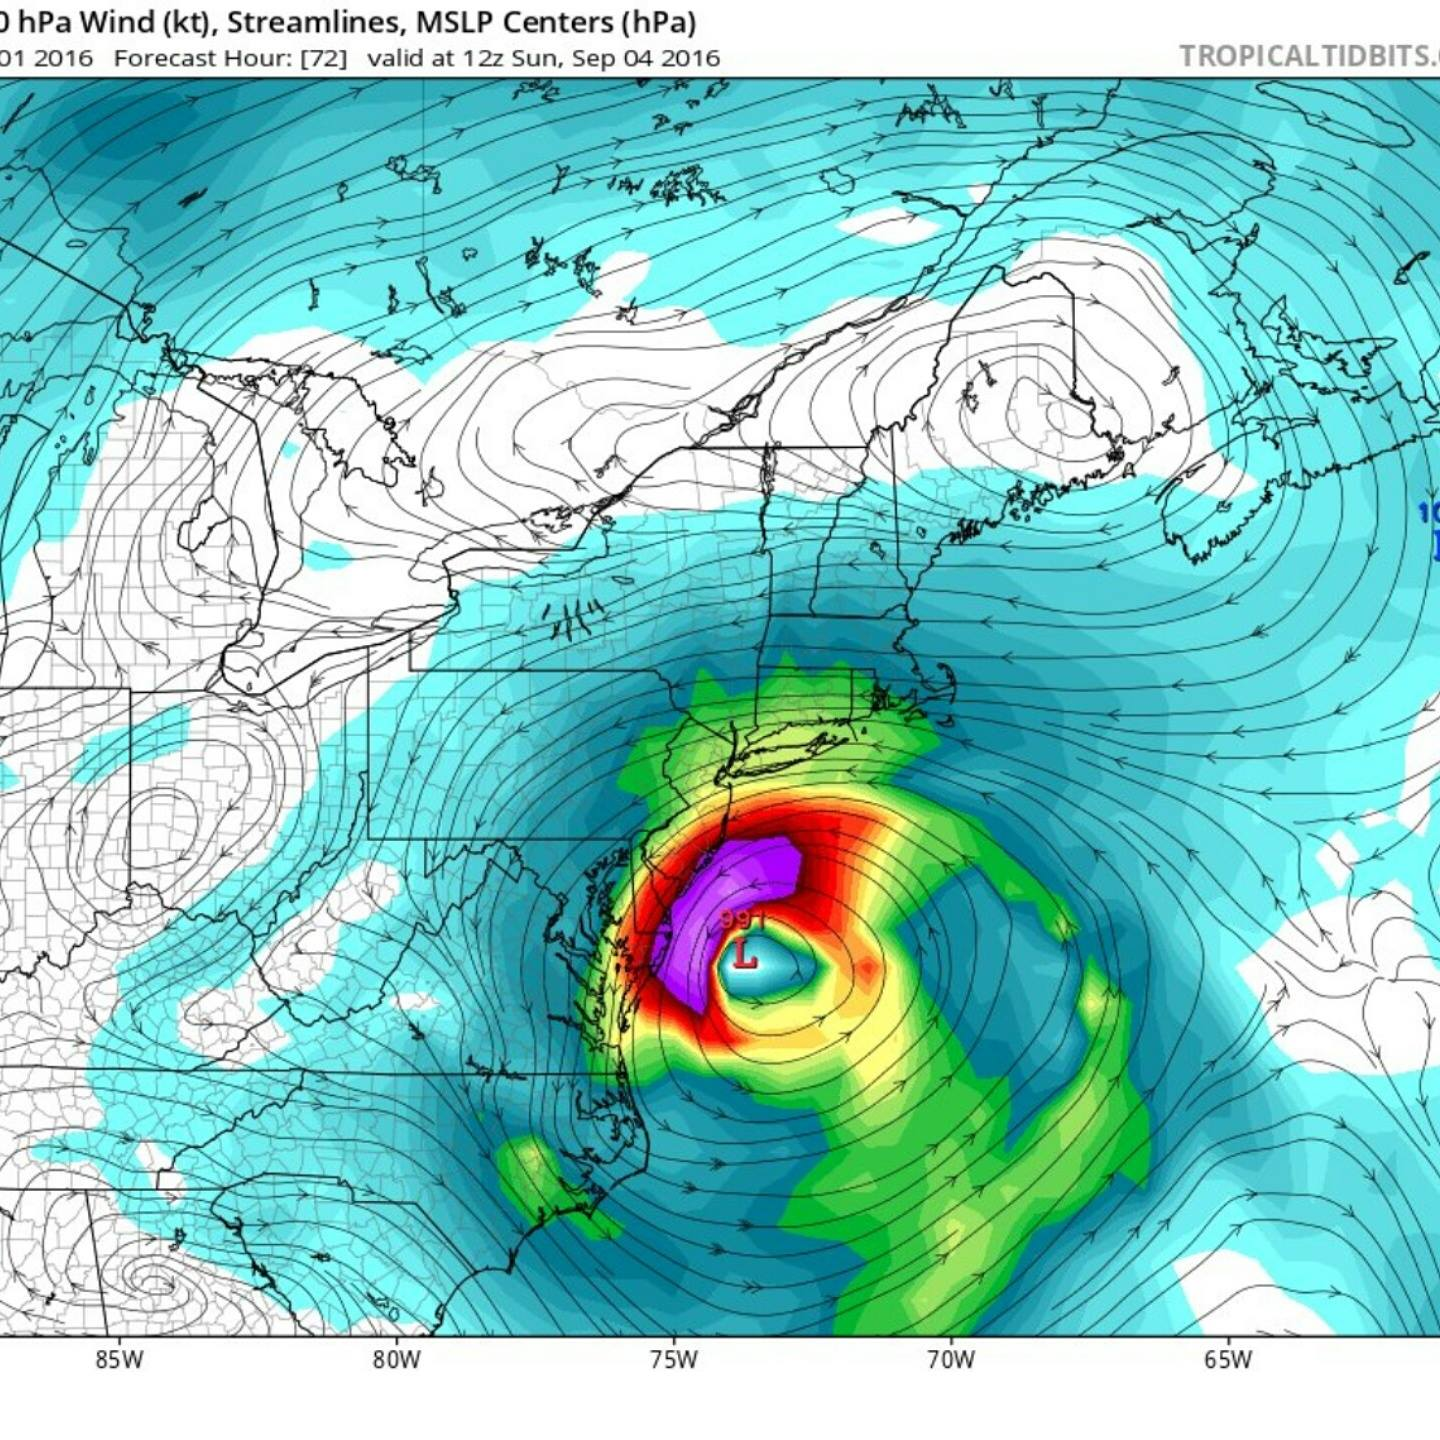 hurricane hermine, delaware, sussex county, tropical storm hermine, nor'easter